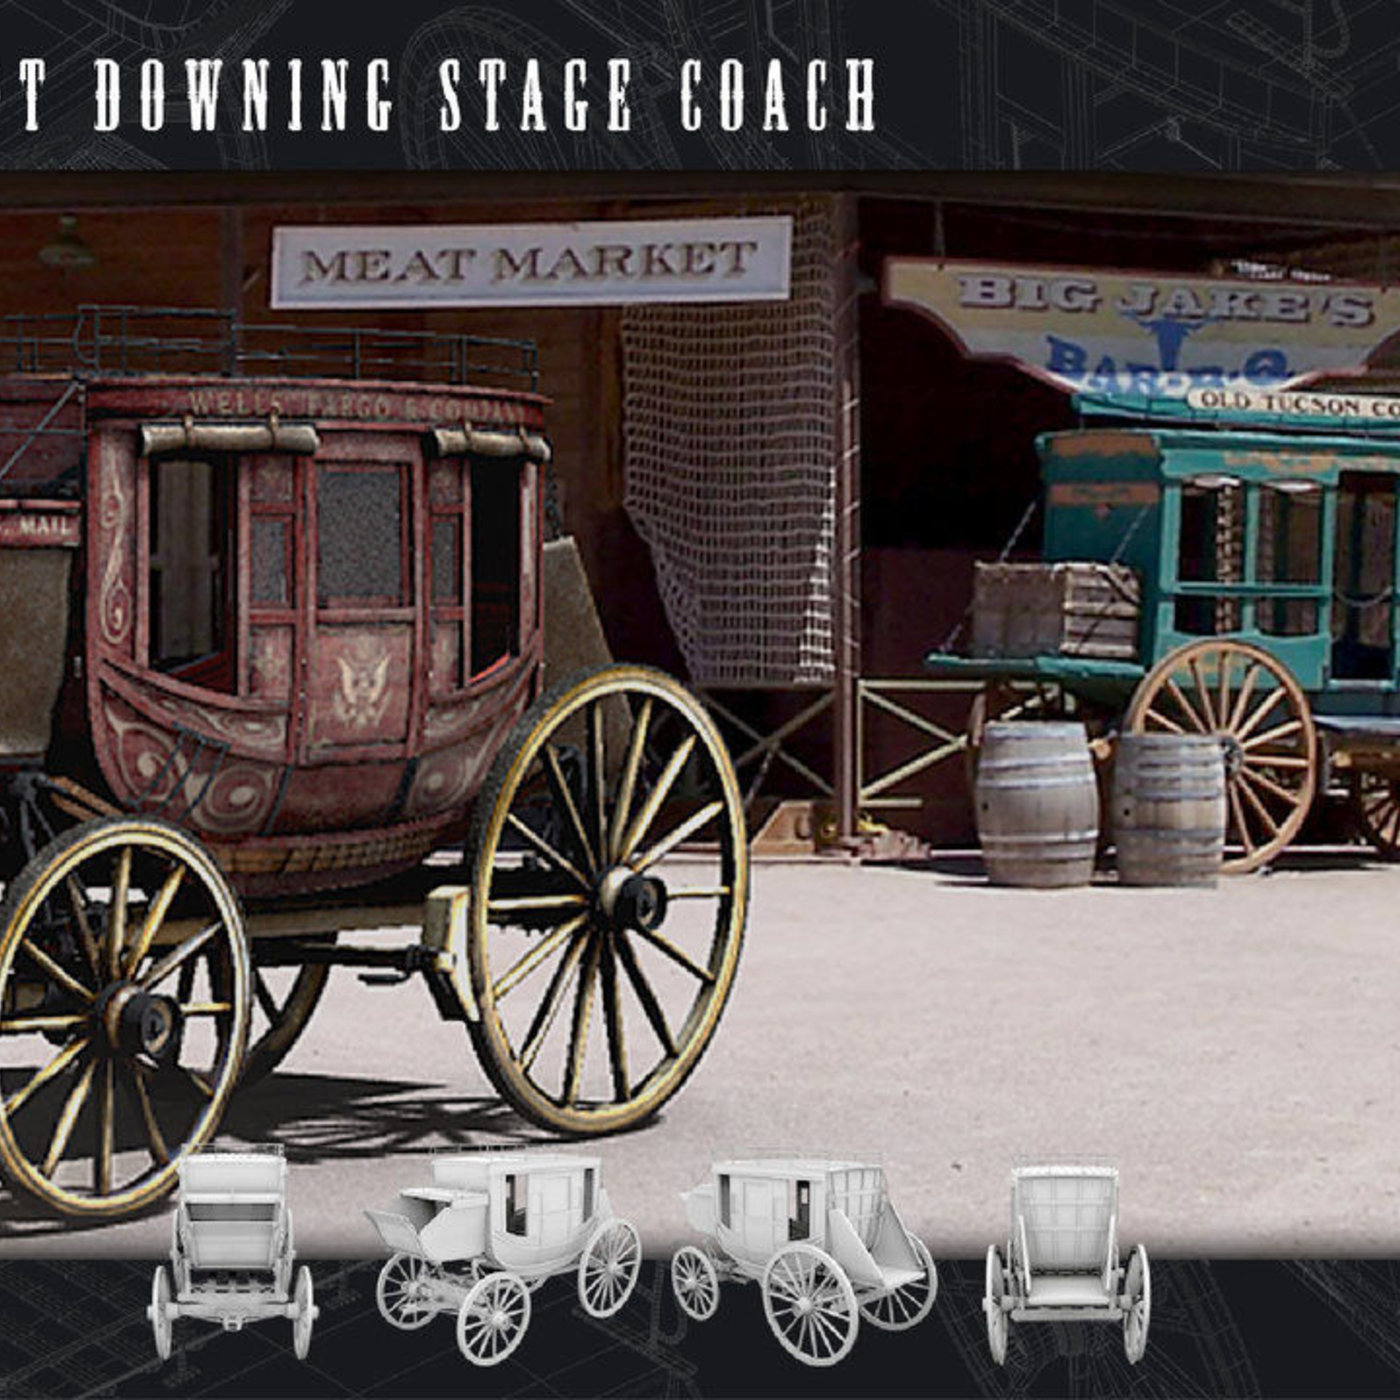 Abbot Downing Stage Coach